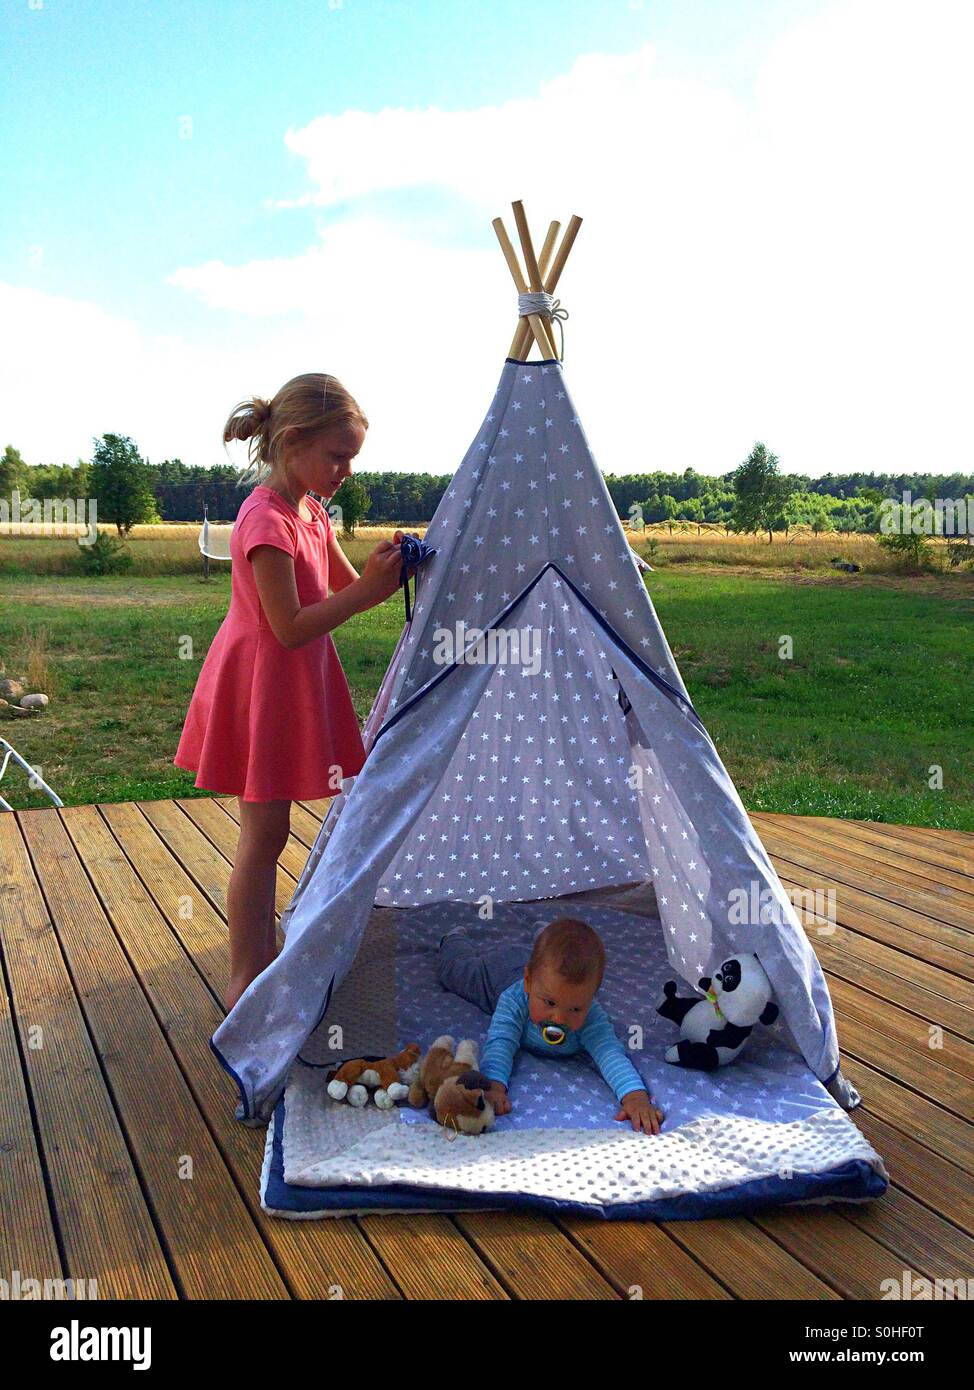 Siblings playing outside in teepee - Stock Image